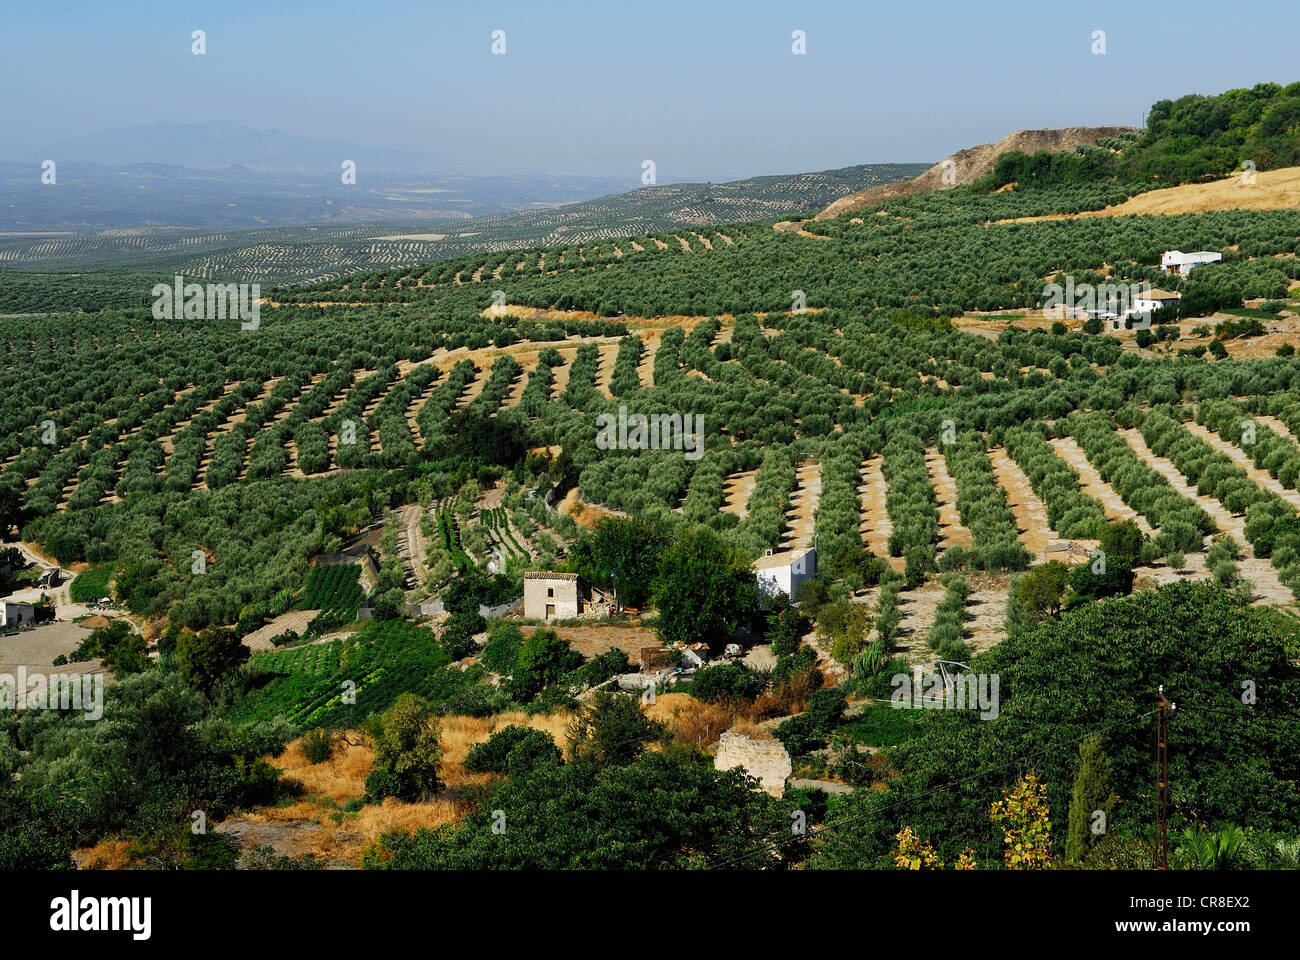 Spain, Andalusia, province of Jaen, Ubeda, city UNESCO World Heritage, olive trees field - Stock Image